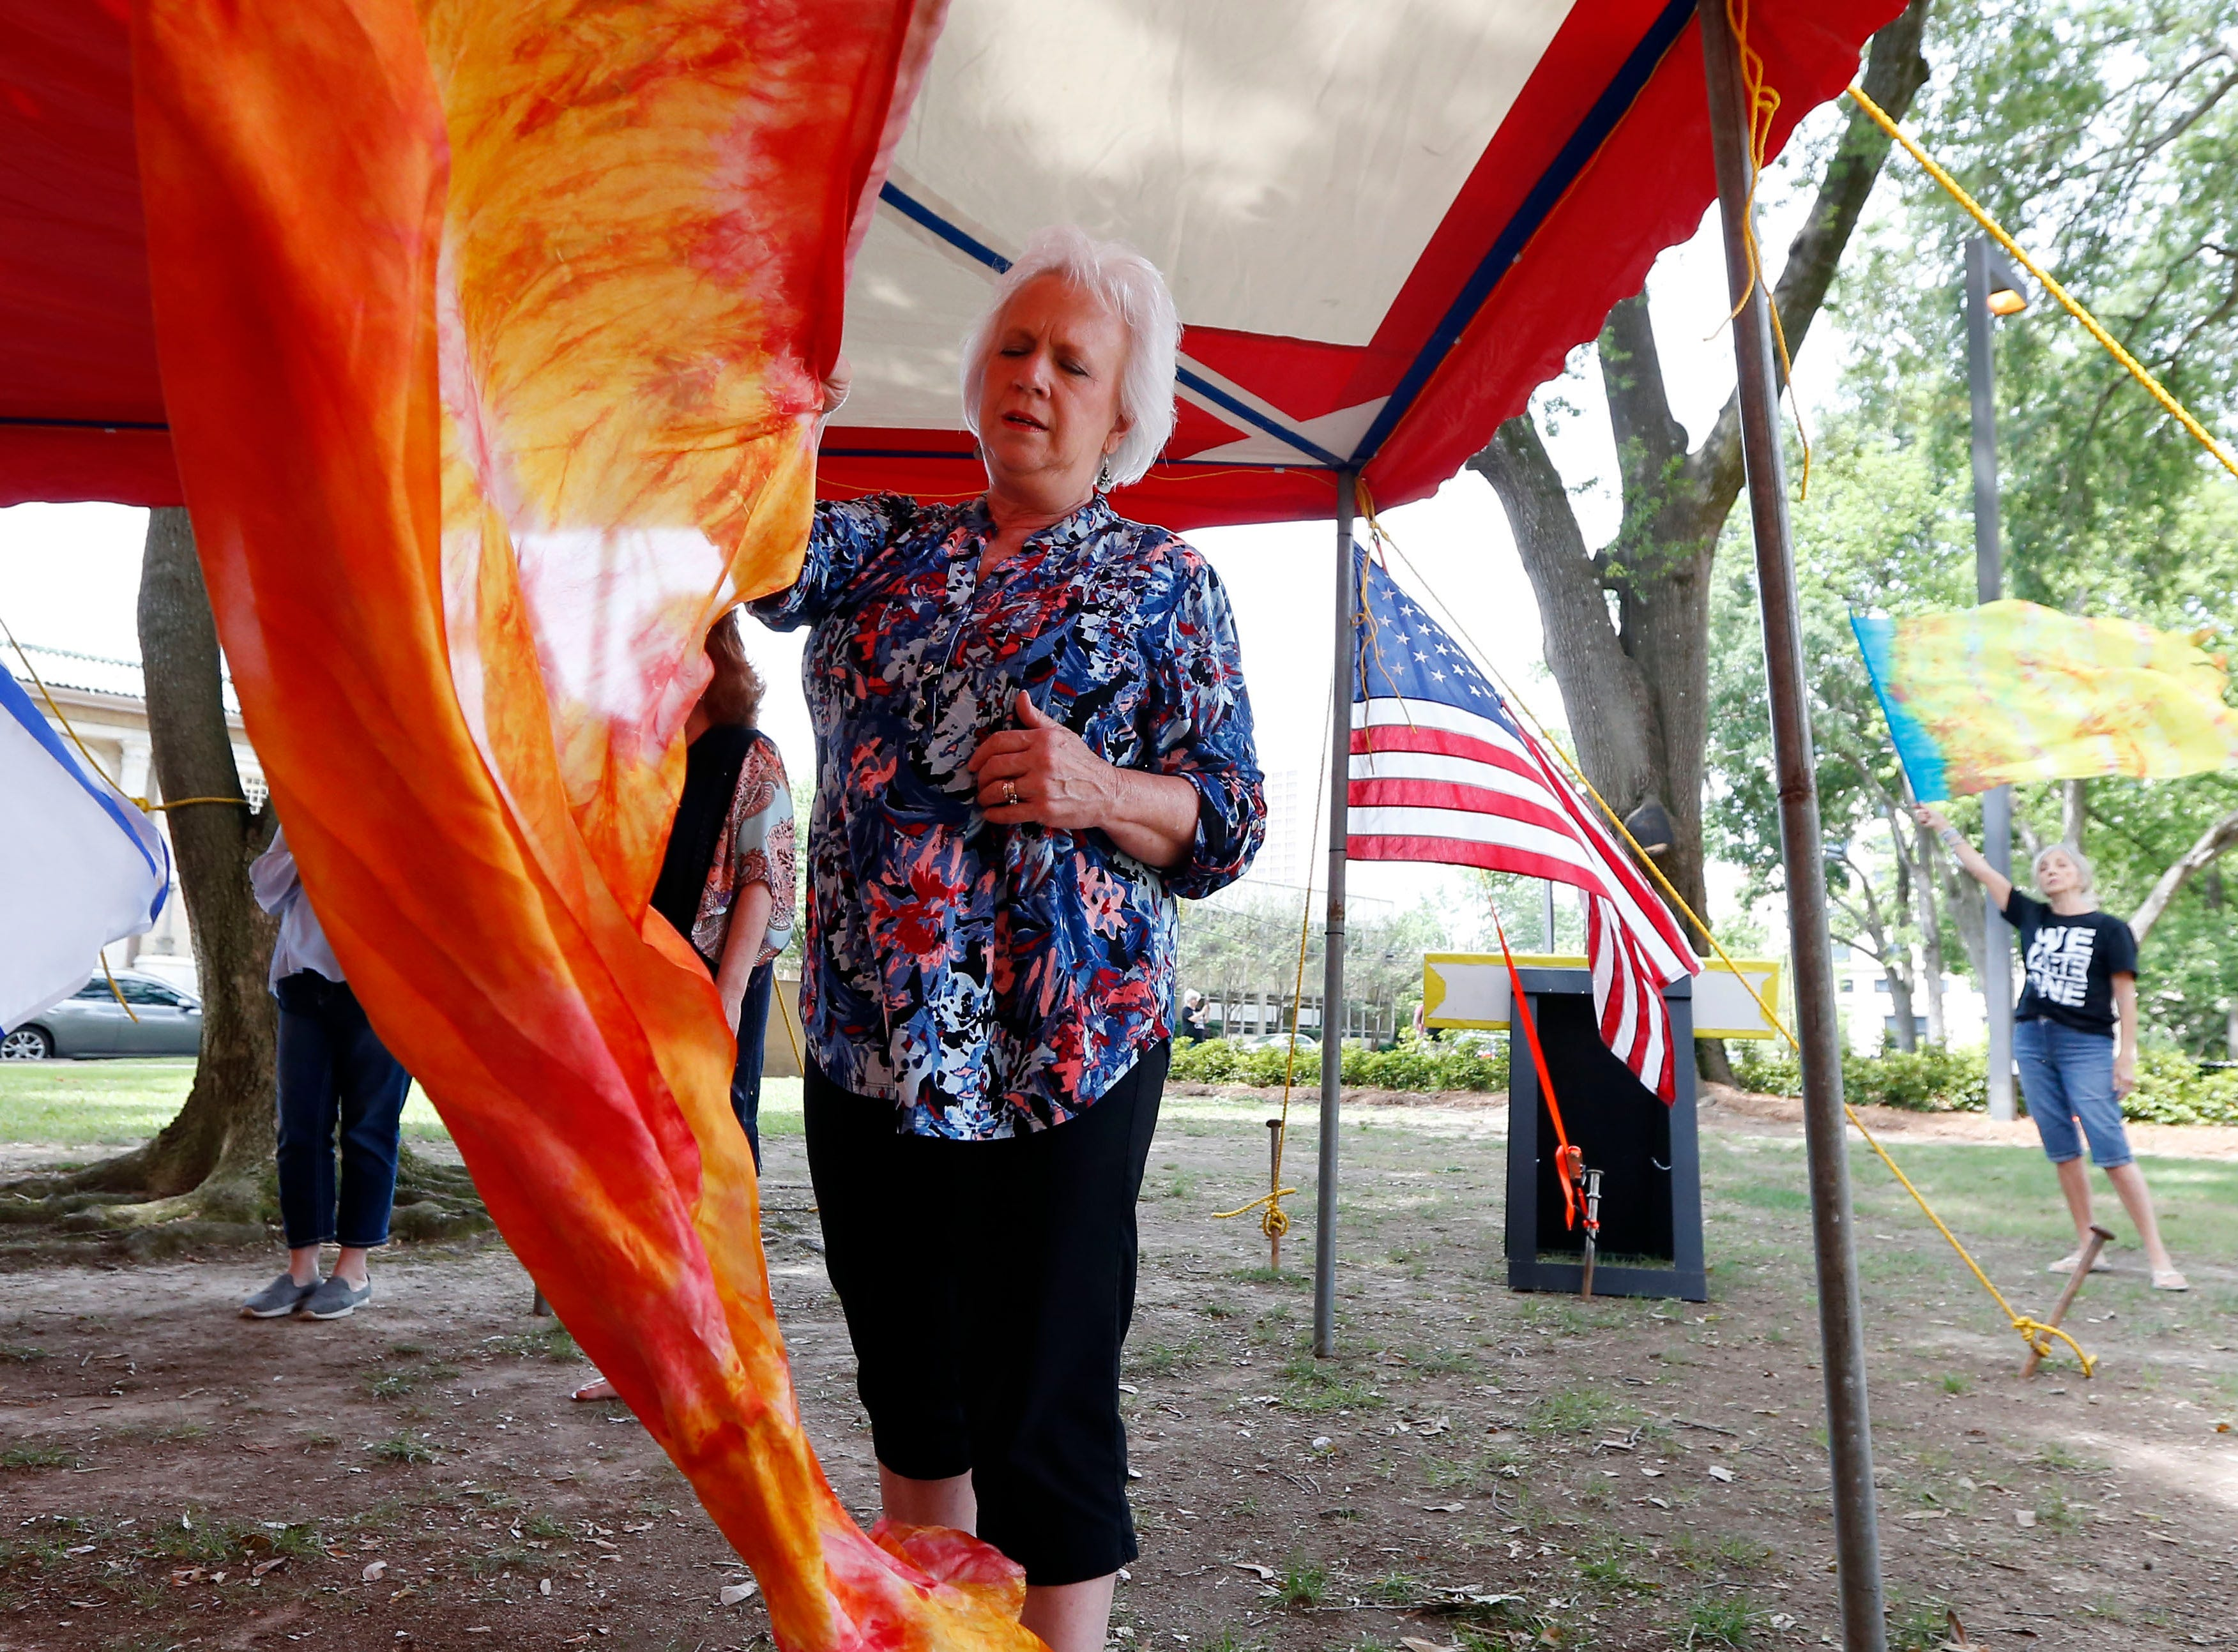 A worshiper prays as she waves a banner on the grounds of the state Capitol in Jackson, Miss., Thursday, May 2, 2019, during the National Day of Prayer. The annual day of observance is held on the first Thursday of May, designated by the United States Congress, calling on all people of faith to pray for the nation and its leaders.